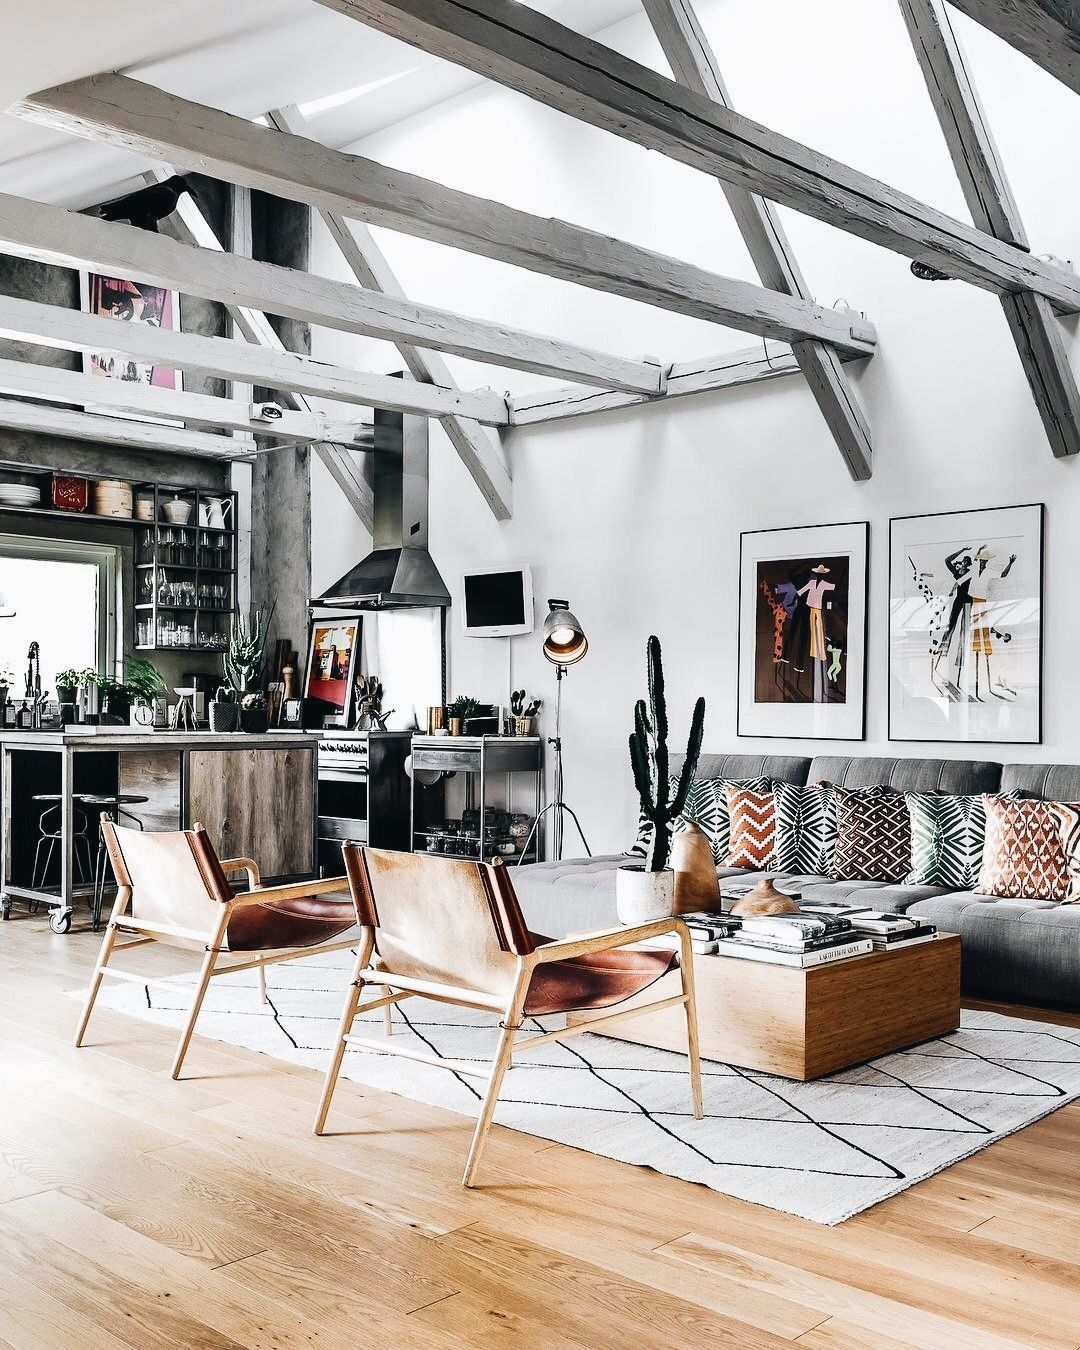 Living Room. Great Room. Kitchen. Modern. Couch. Beams